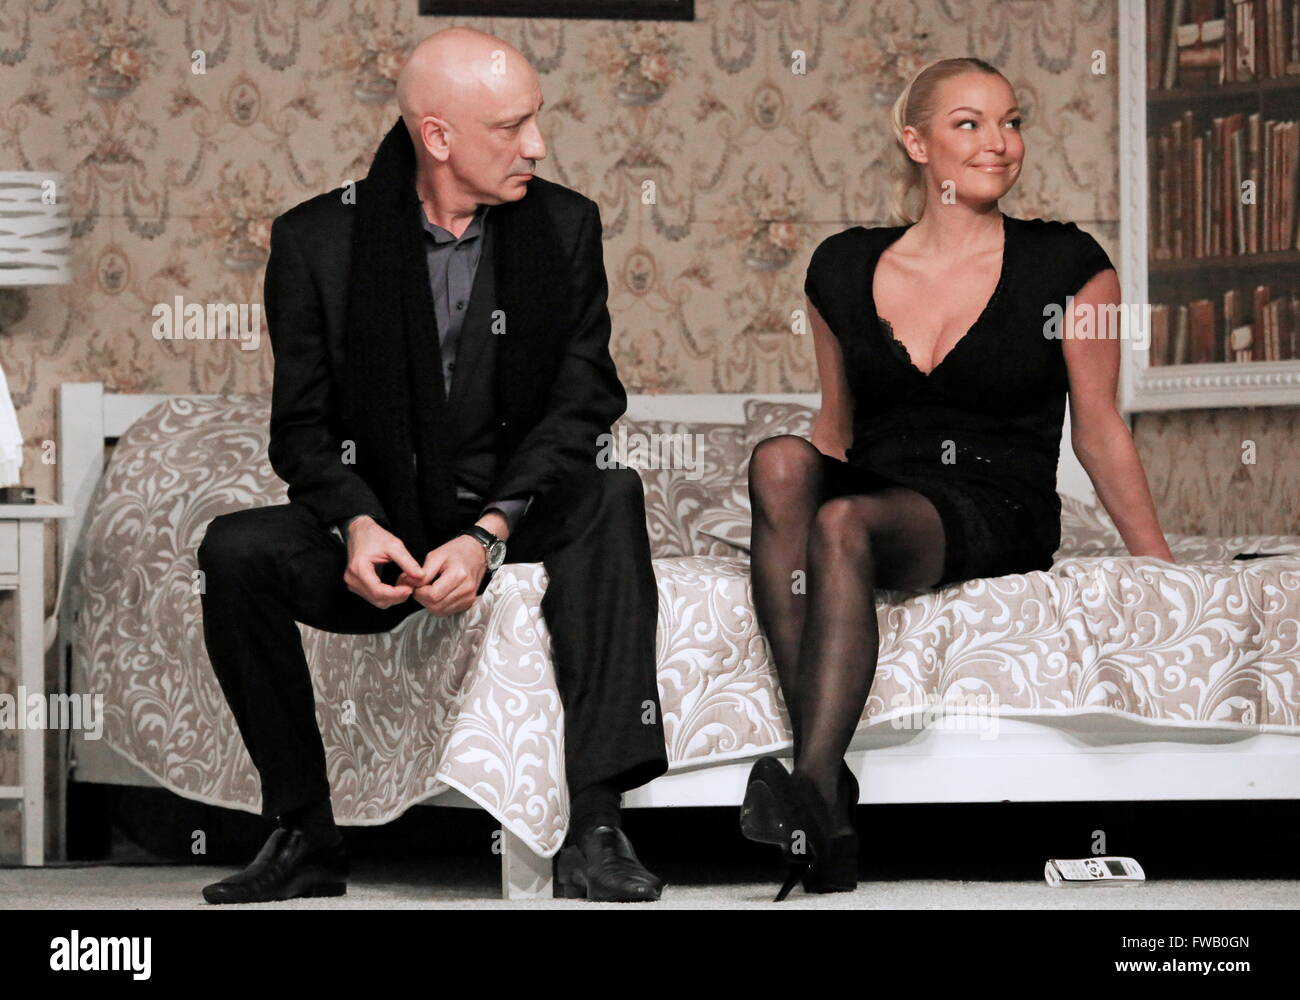 Anastasia Volochkova forced her daughter to sit on the splits 03/03/2018 31